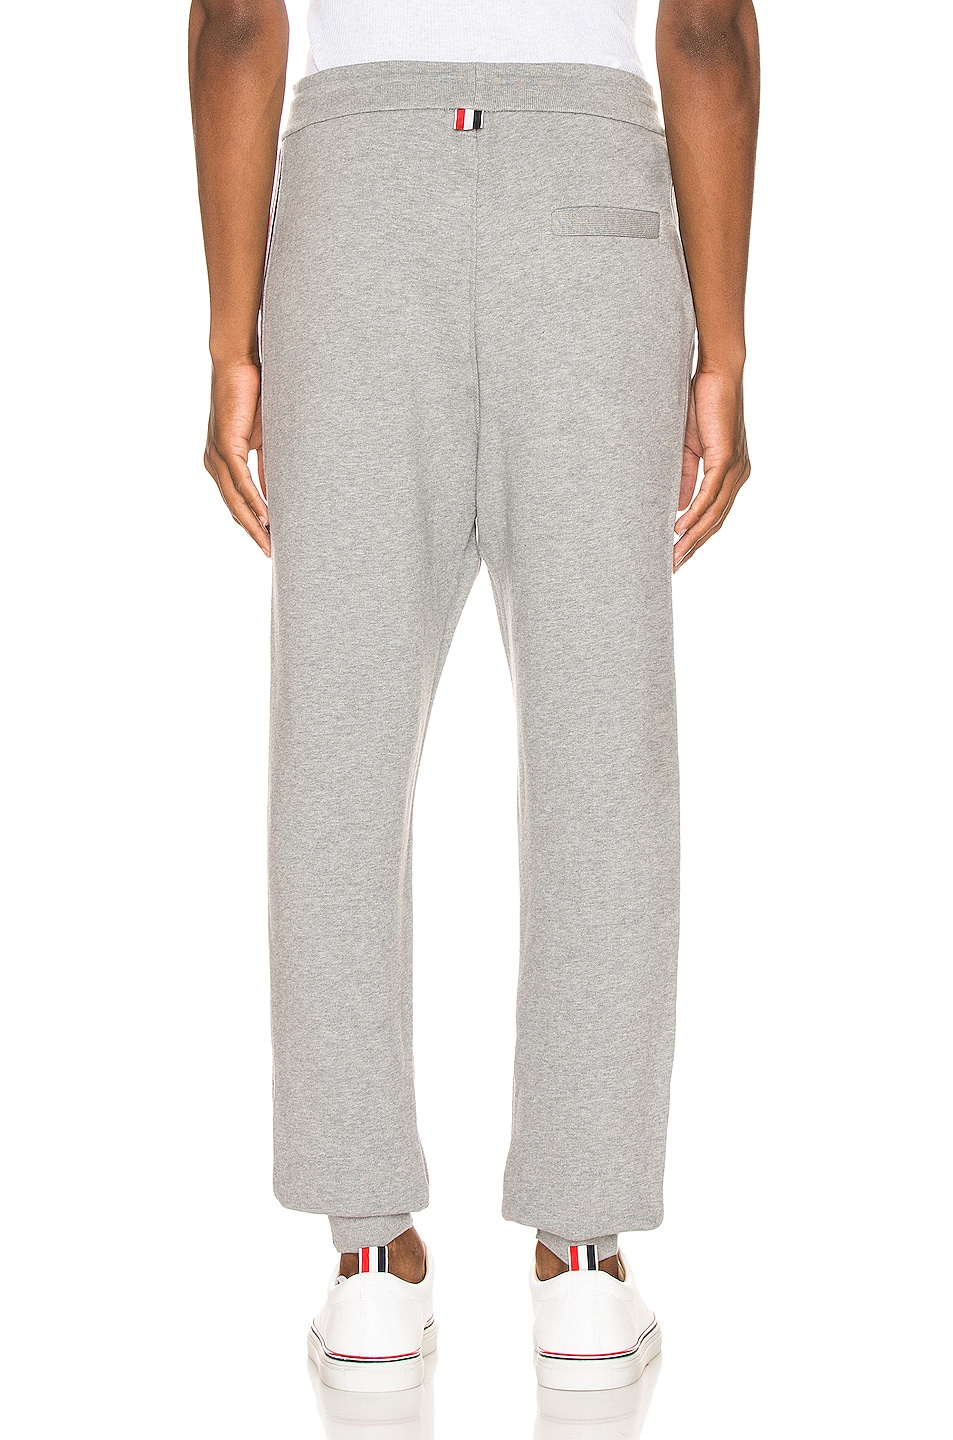 Image 4 of Thom Browne Sweatpants in Light Grey